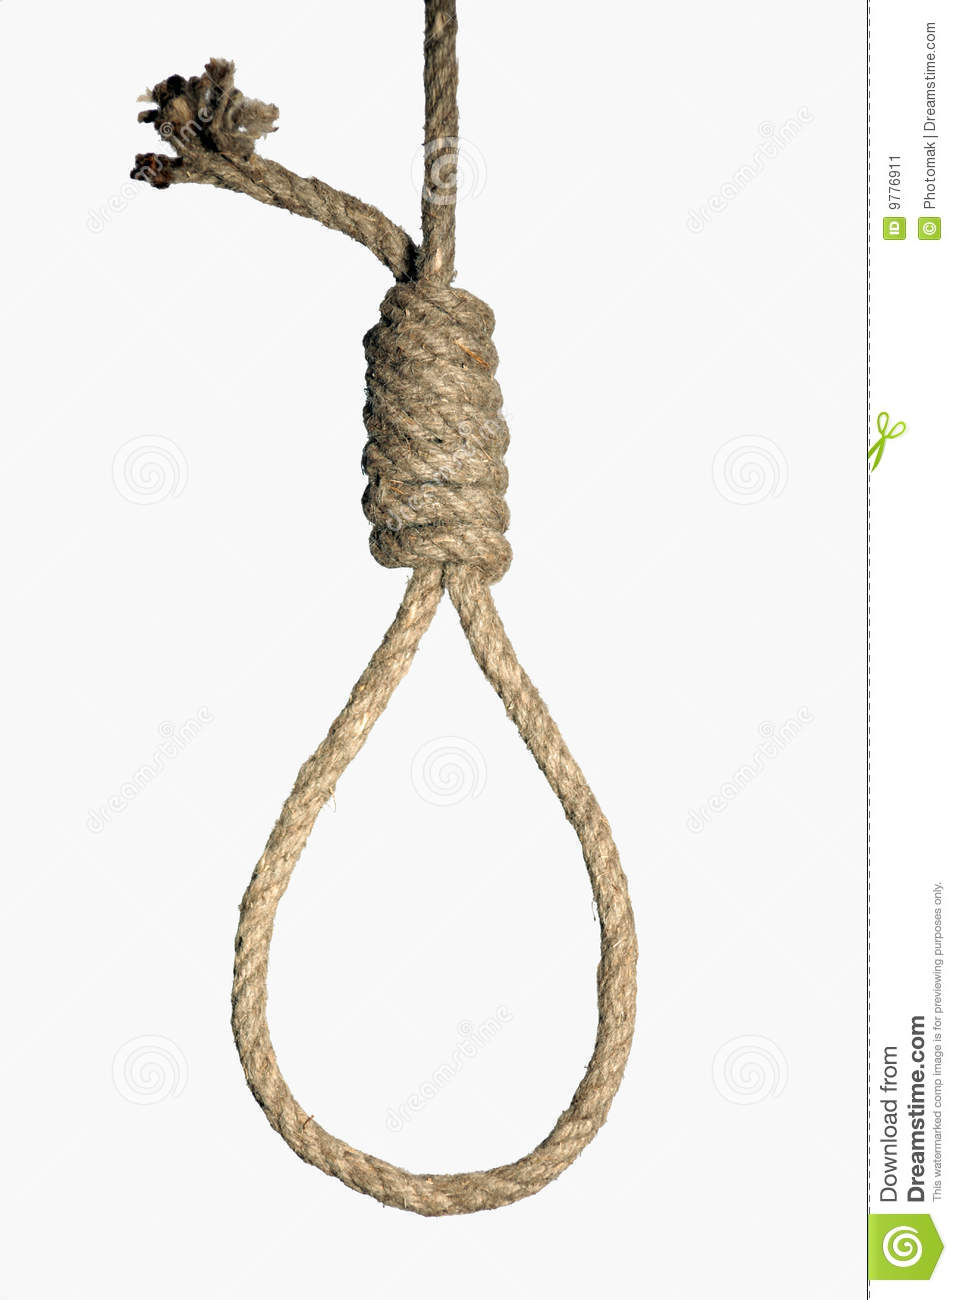 Hangman's Noose On White Background Stock Image - Image: 9776911